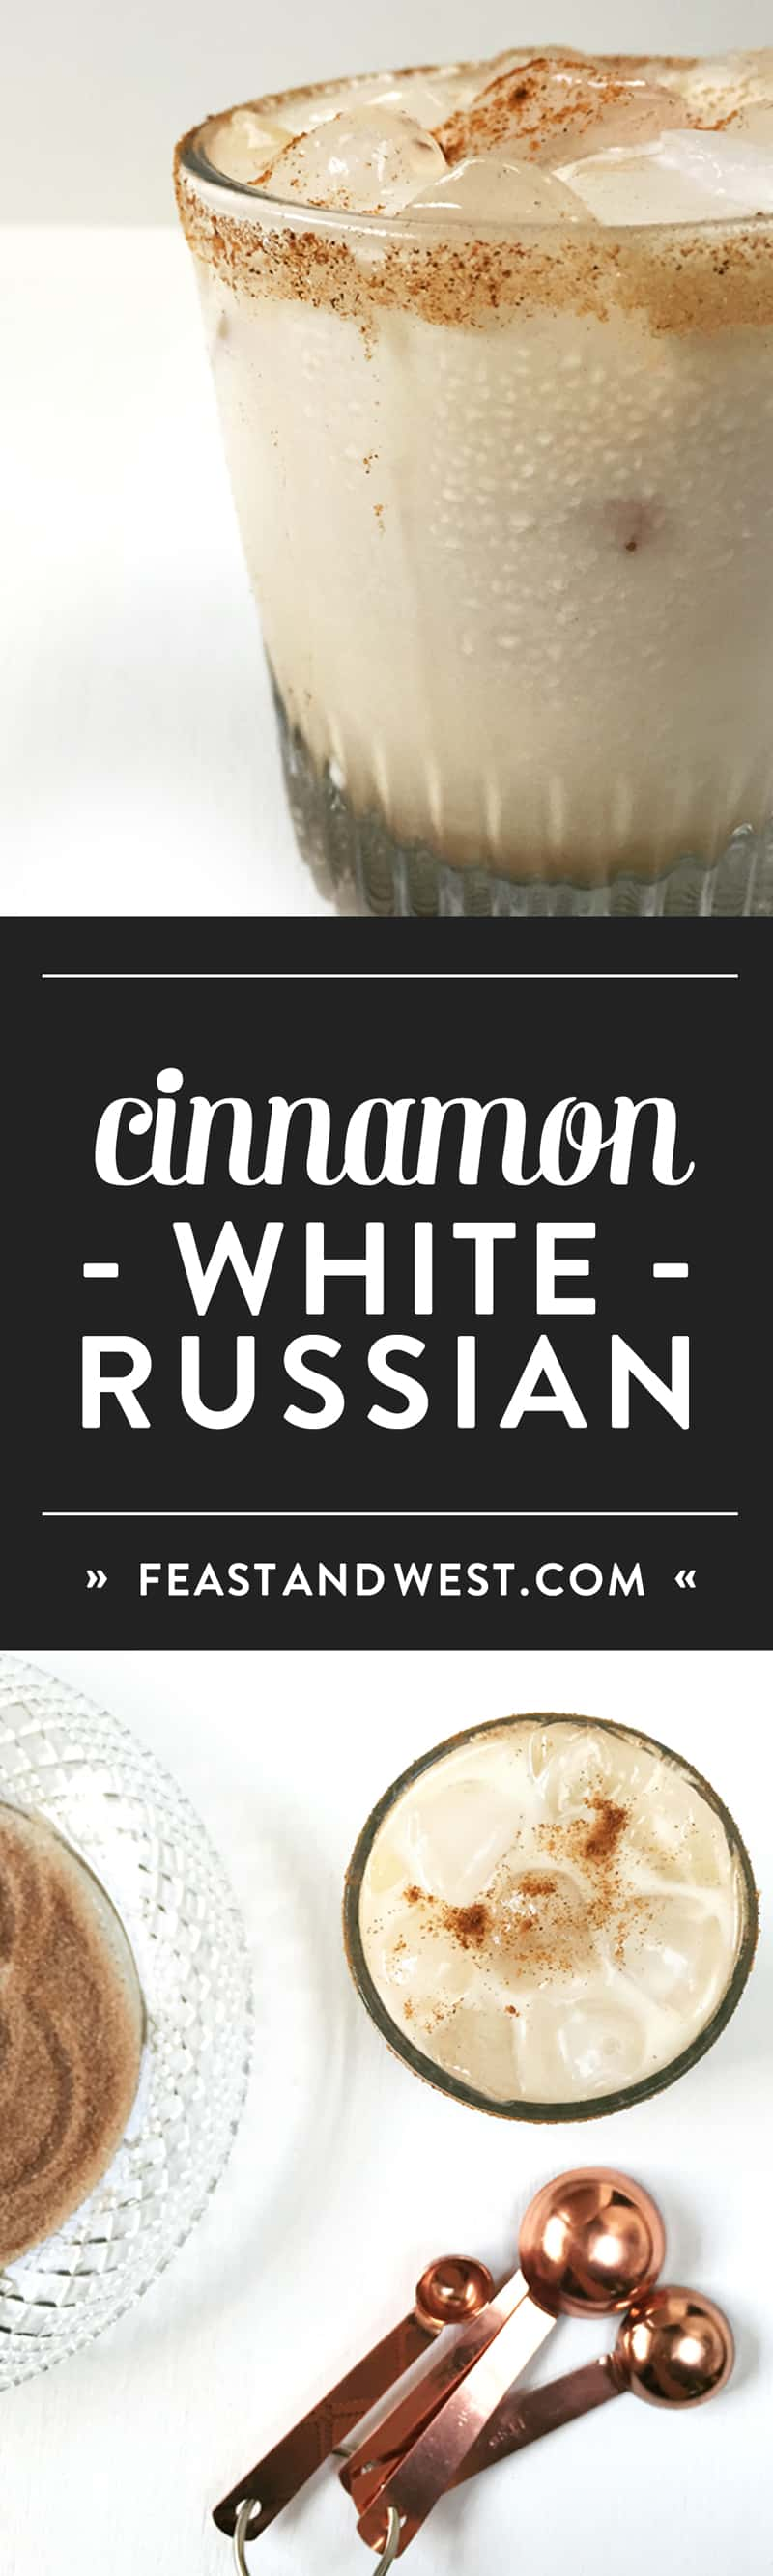 Cinnamon White Russian, the perfect holiday after-dinner cocktail. (via feastandwest.com)